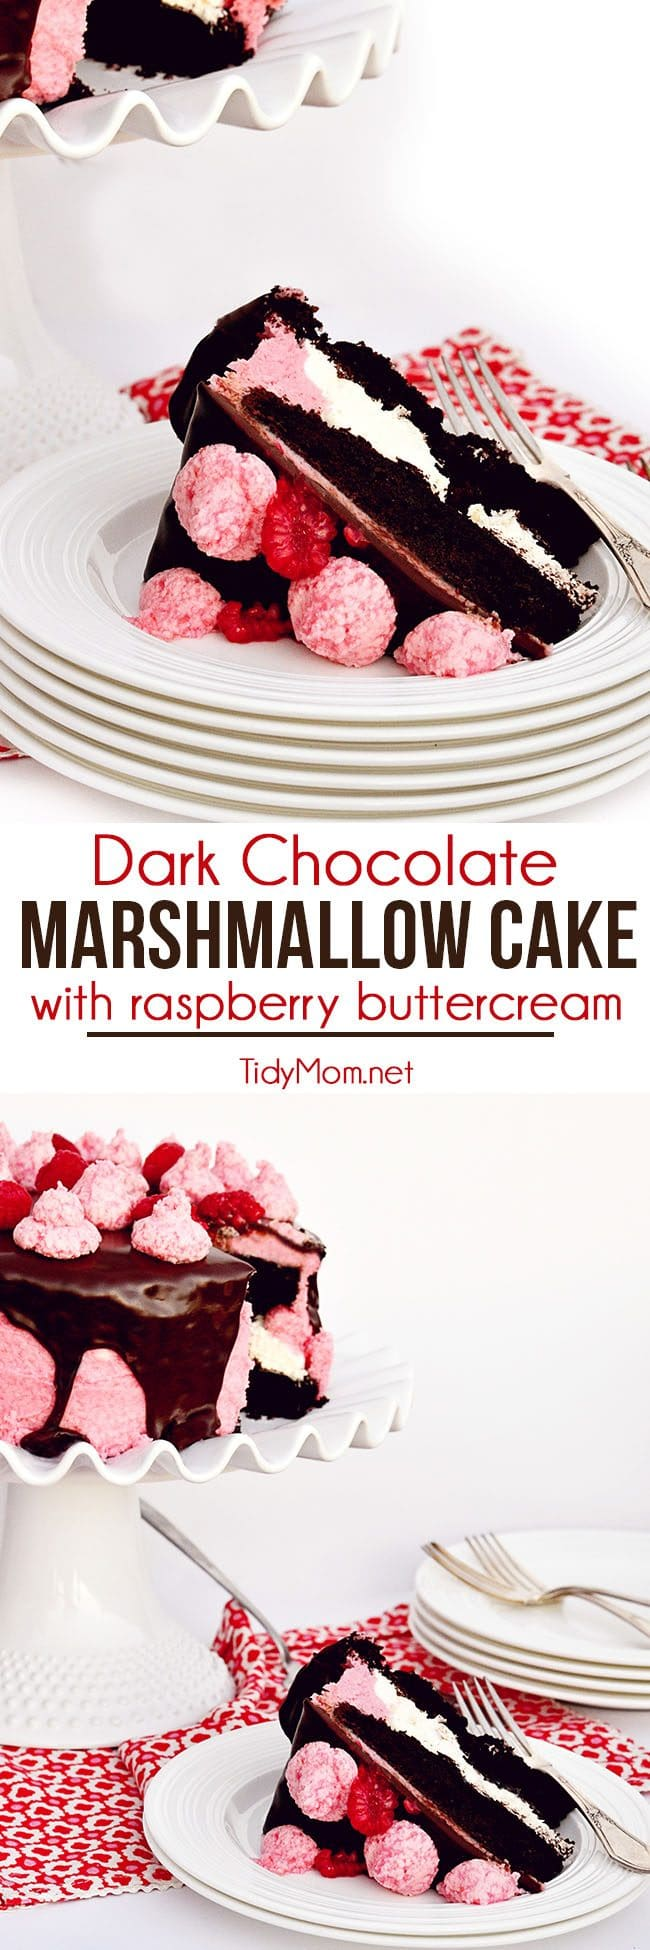 Dark chocolate, toasted marshmallow and raspberries is a delicious combination for a baby shower, birthday party, and perfect for Valentine's Day. Dark Chocolate Covered Marshmallow Cake with Raspberry Buttercream recipe at TidyMom.net